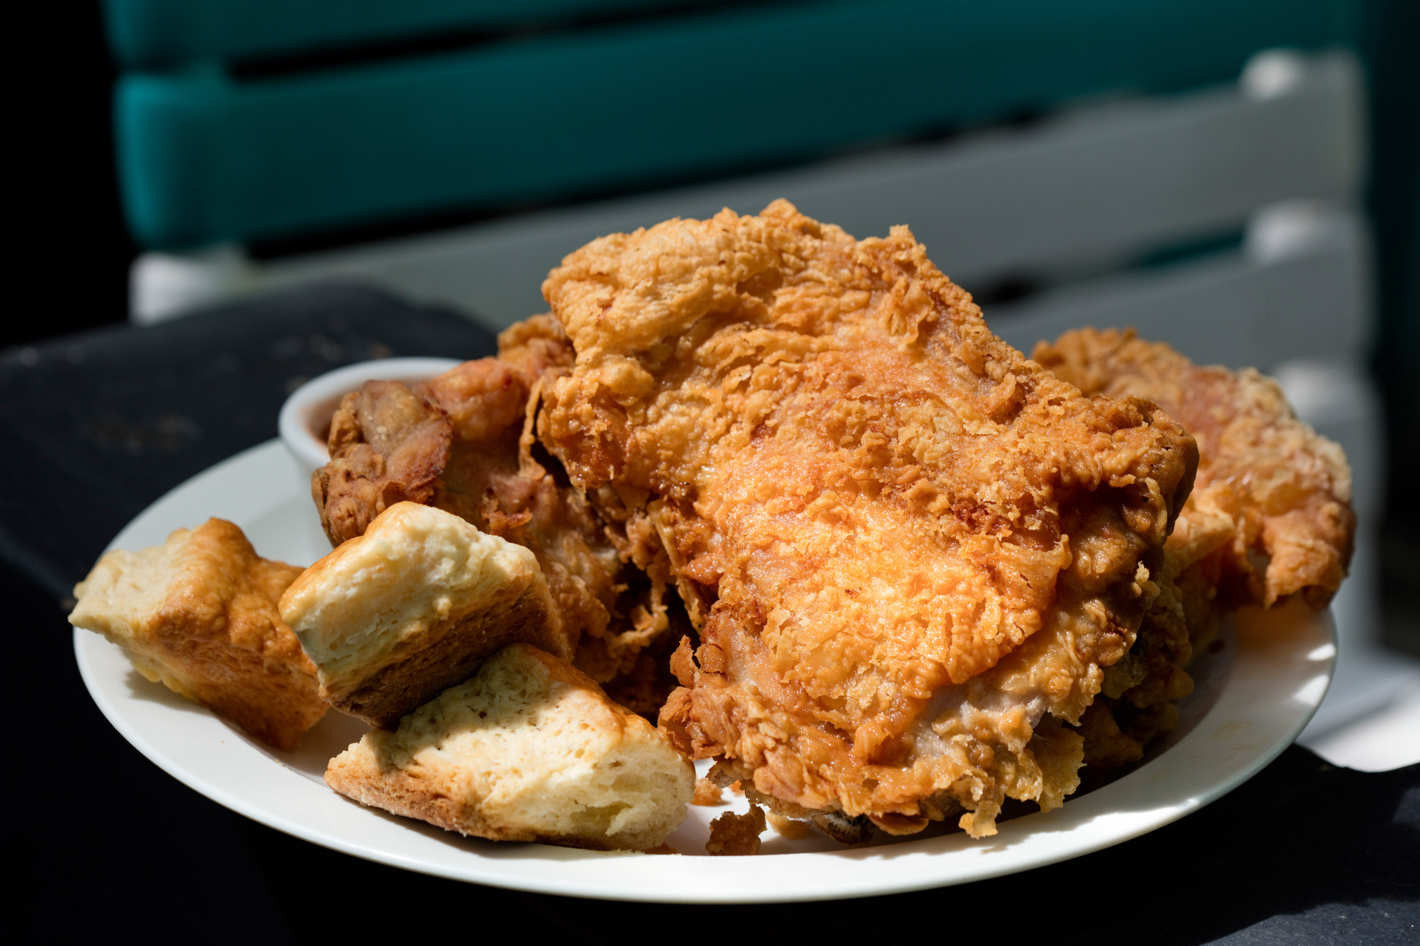 Fried Chicken Nyc  The Absolute Best Fried Chicken in NYC